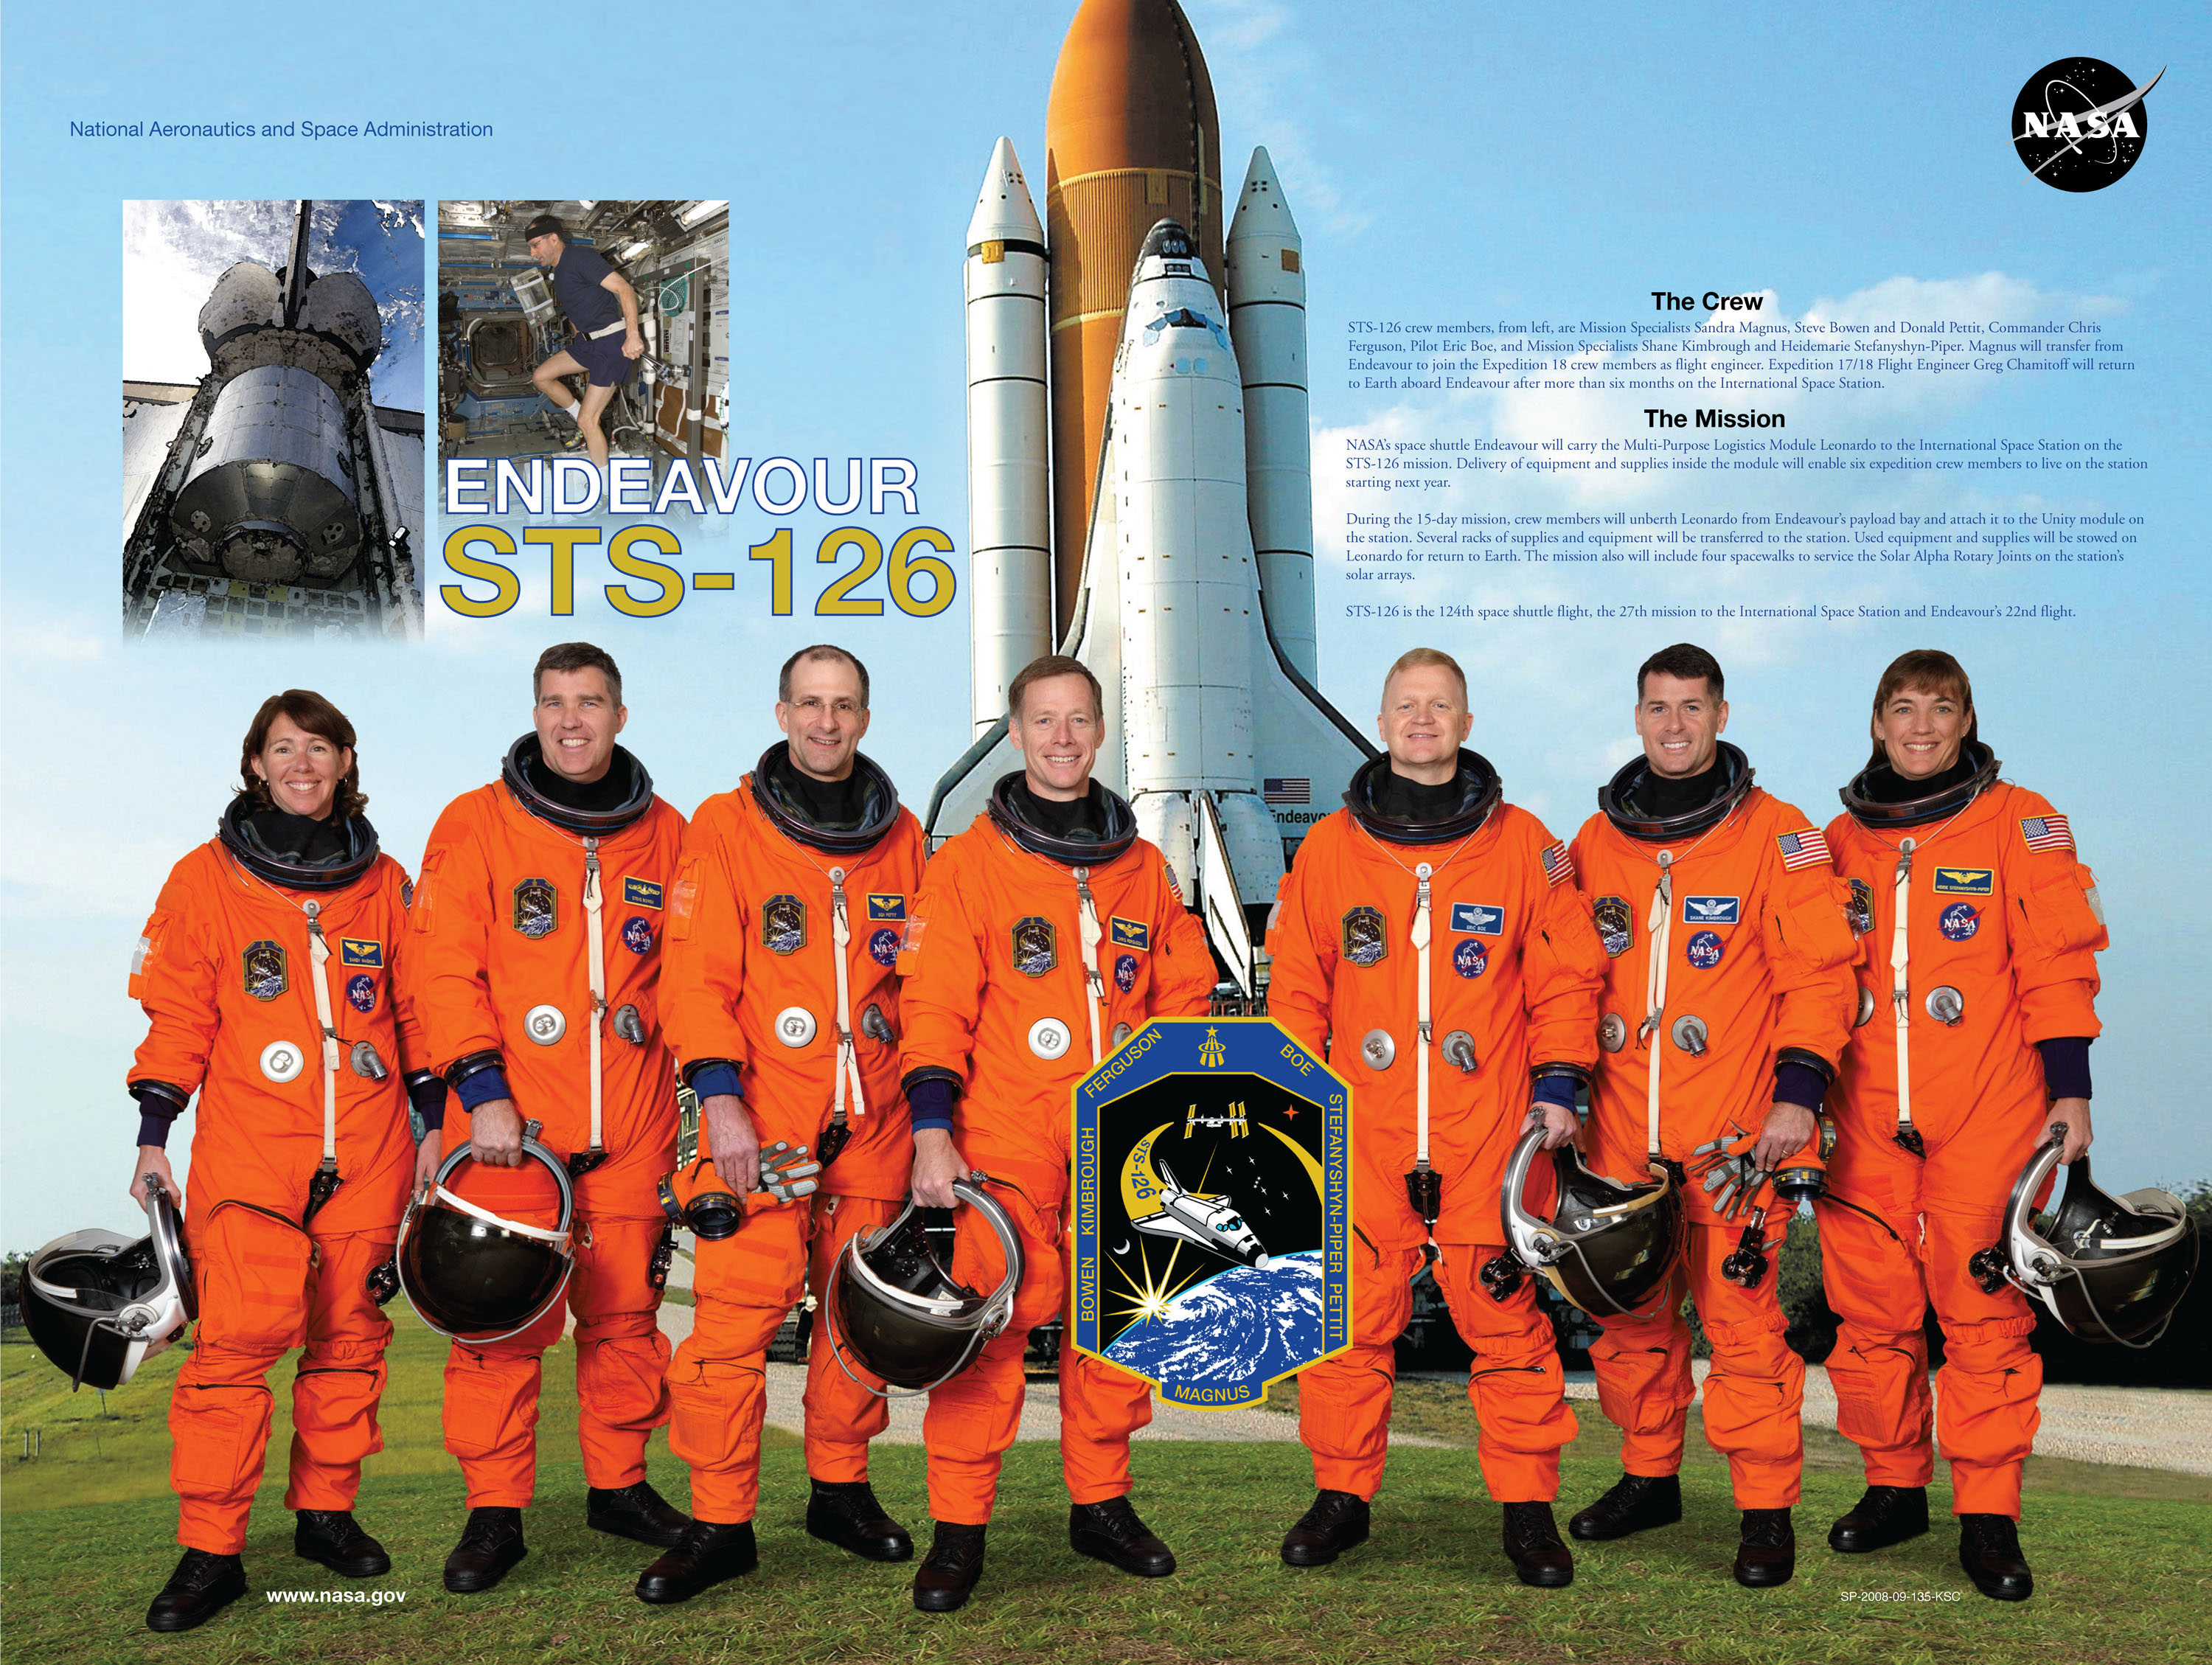 space shuttle discovery crew - photo #15